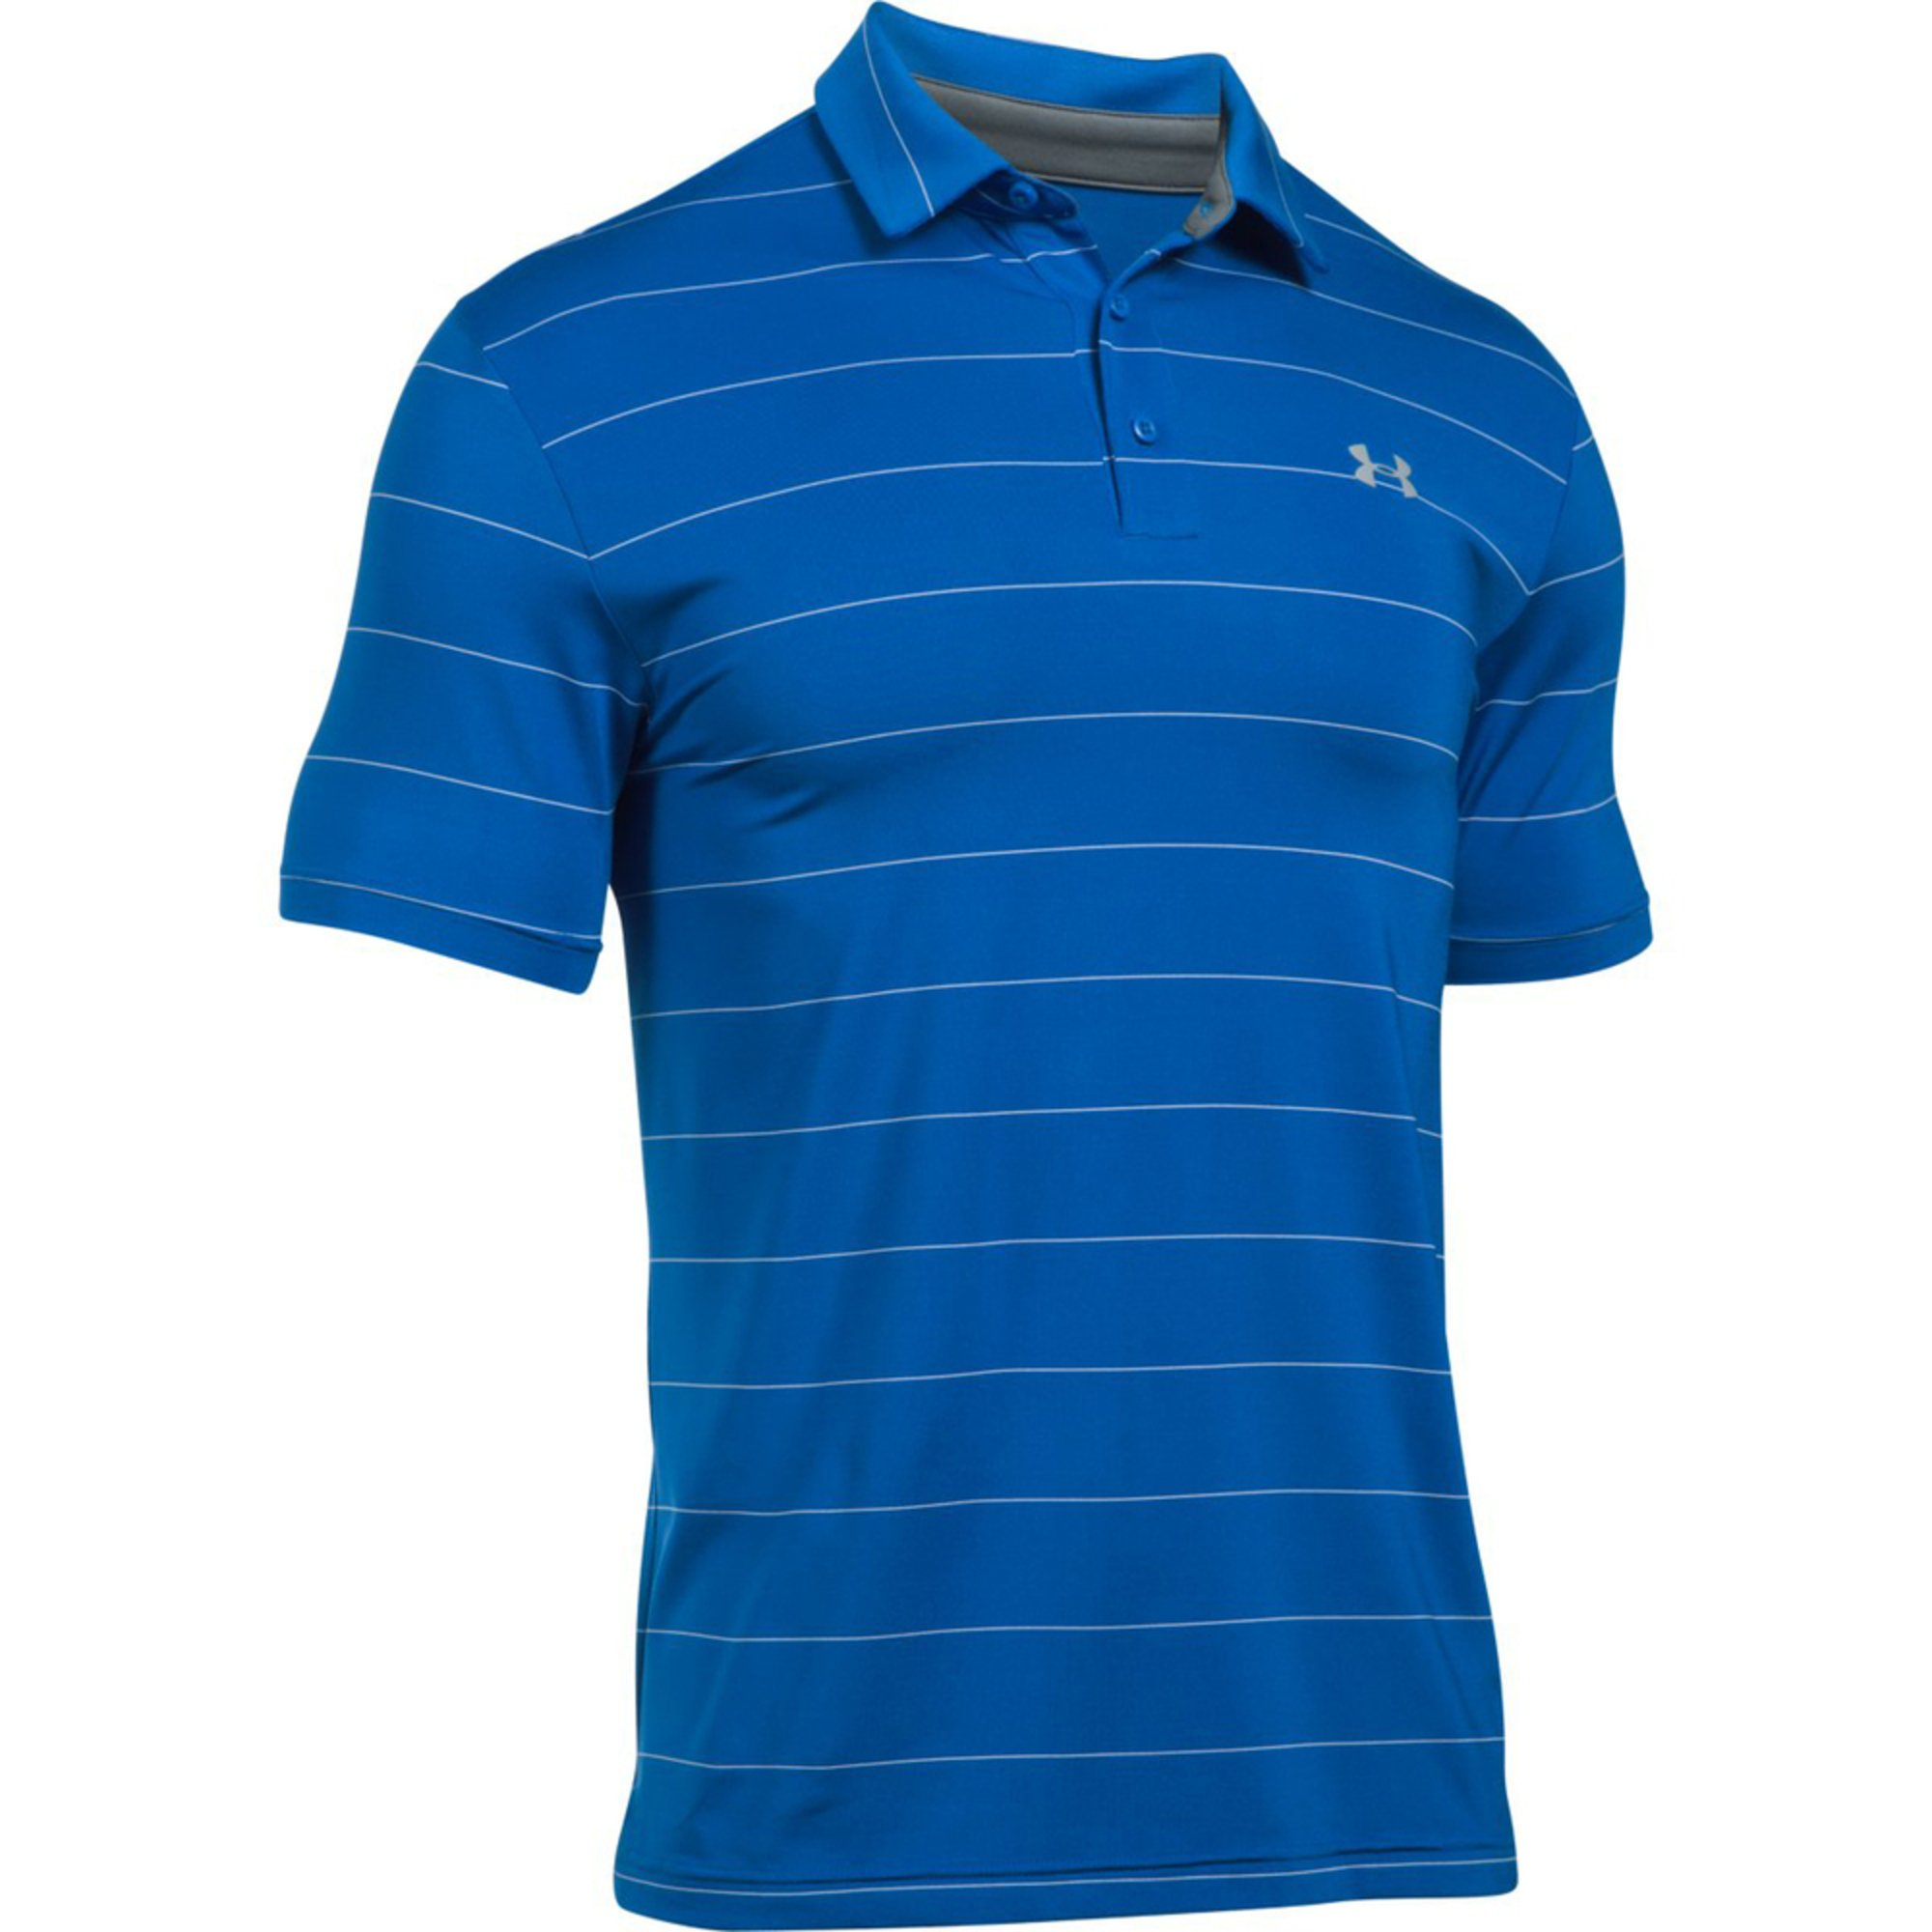 Under armour men 39 s playoff polo bluemarker steel for Under armour men s shirts clearance